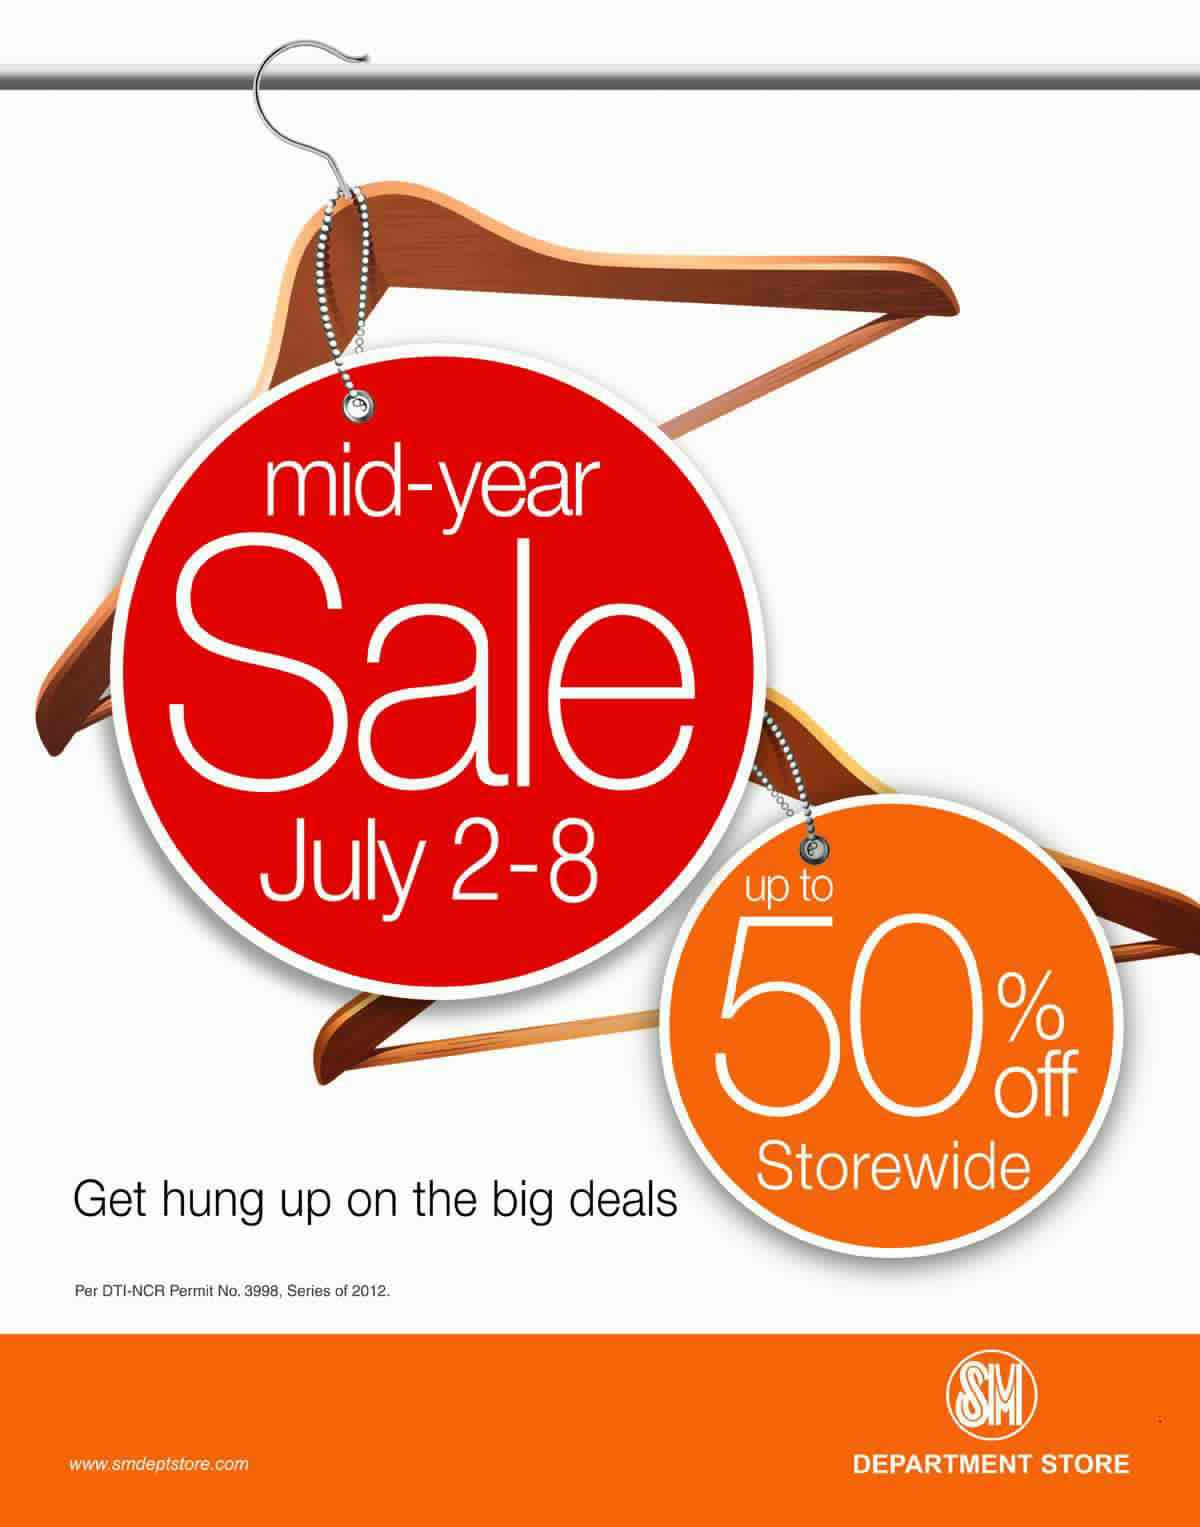 SM Department Store Mid-Year Sale July 2012